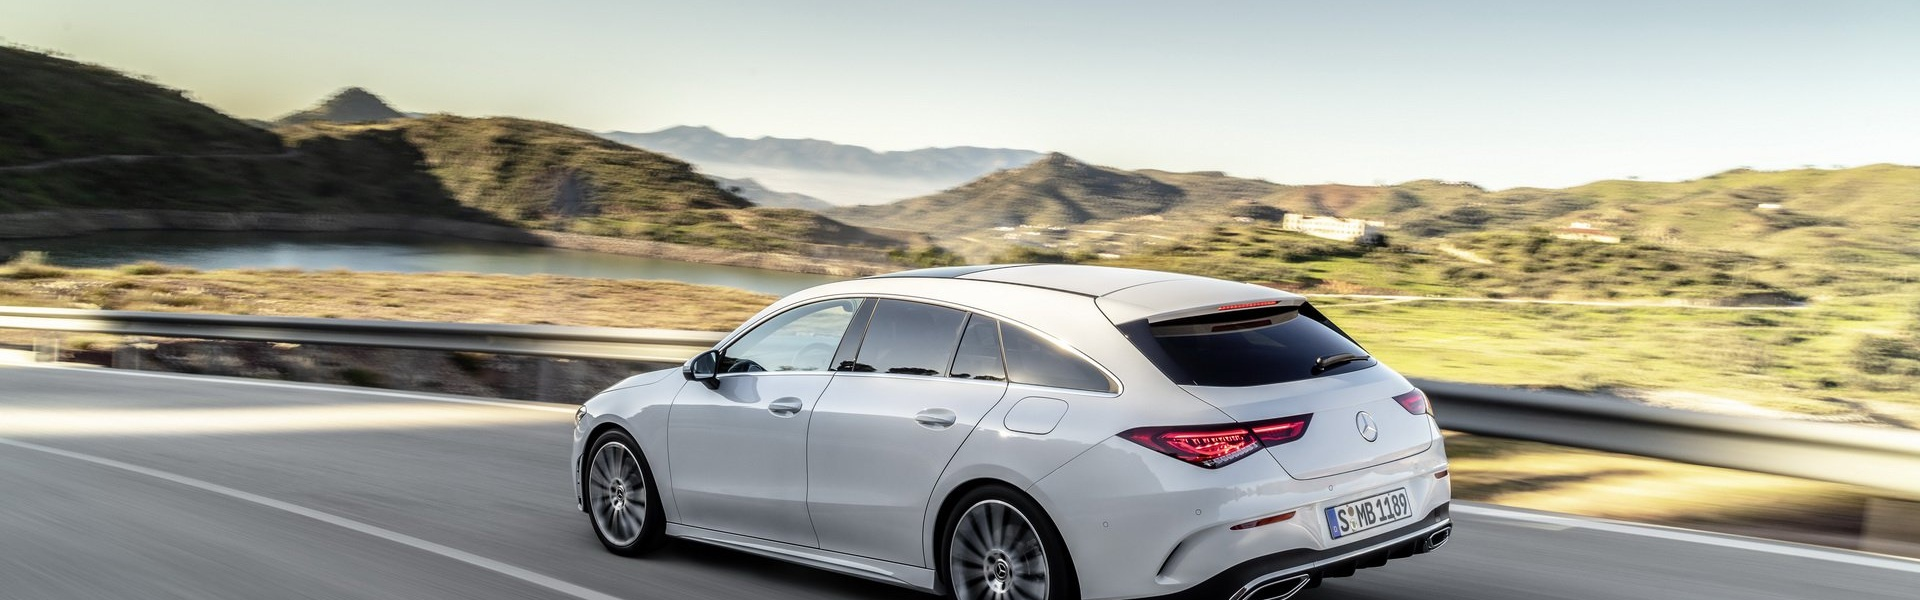 2019-mercedes-cla-shooting-brake-unveiled-18.jpg